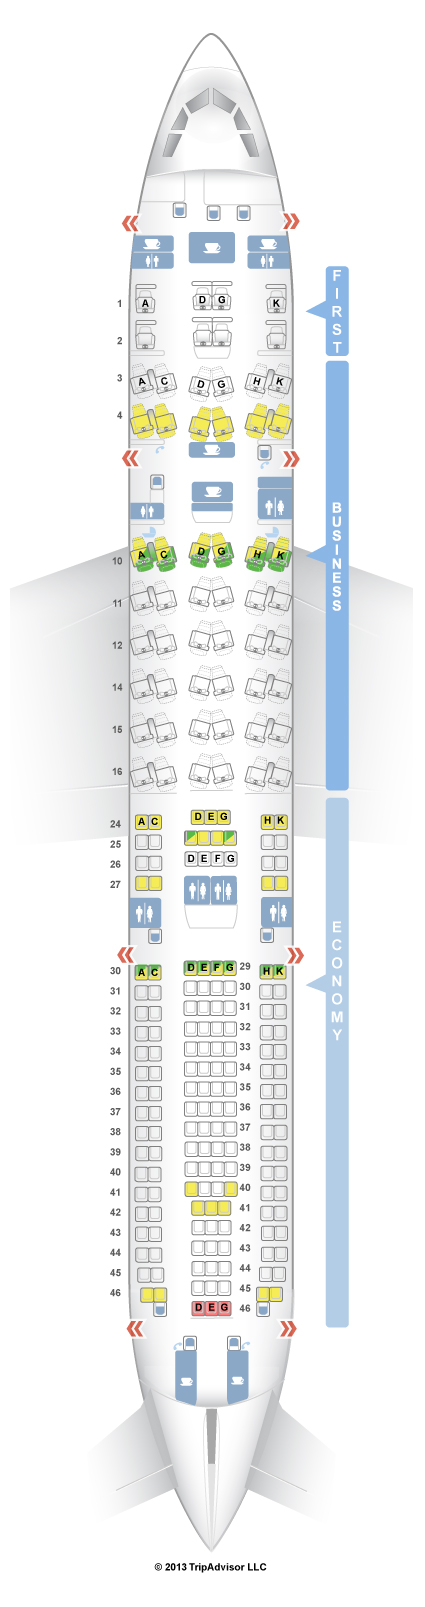 SeatGuru Seat Map Lufthansa Airbus A330-300 (333) V1 - Denver to